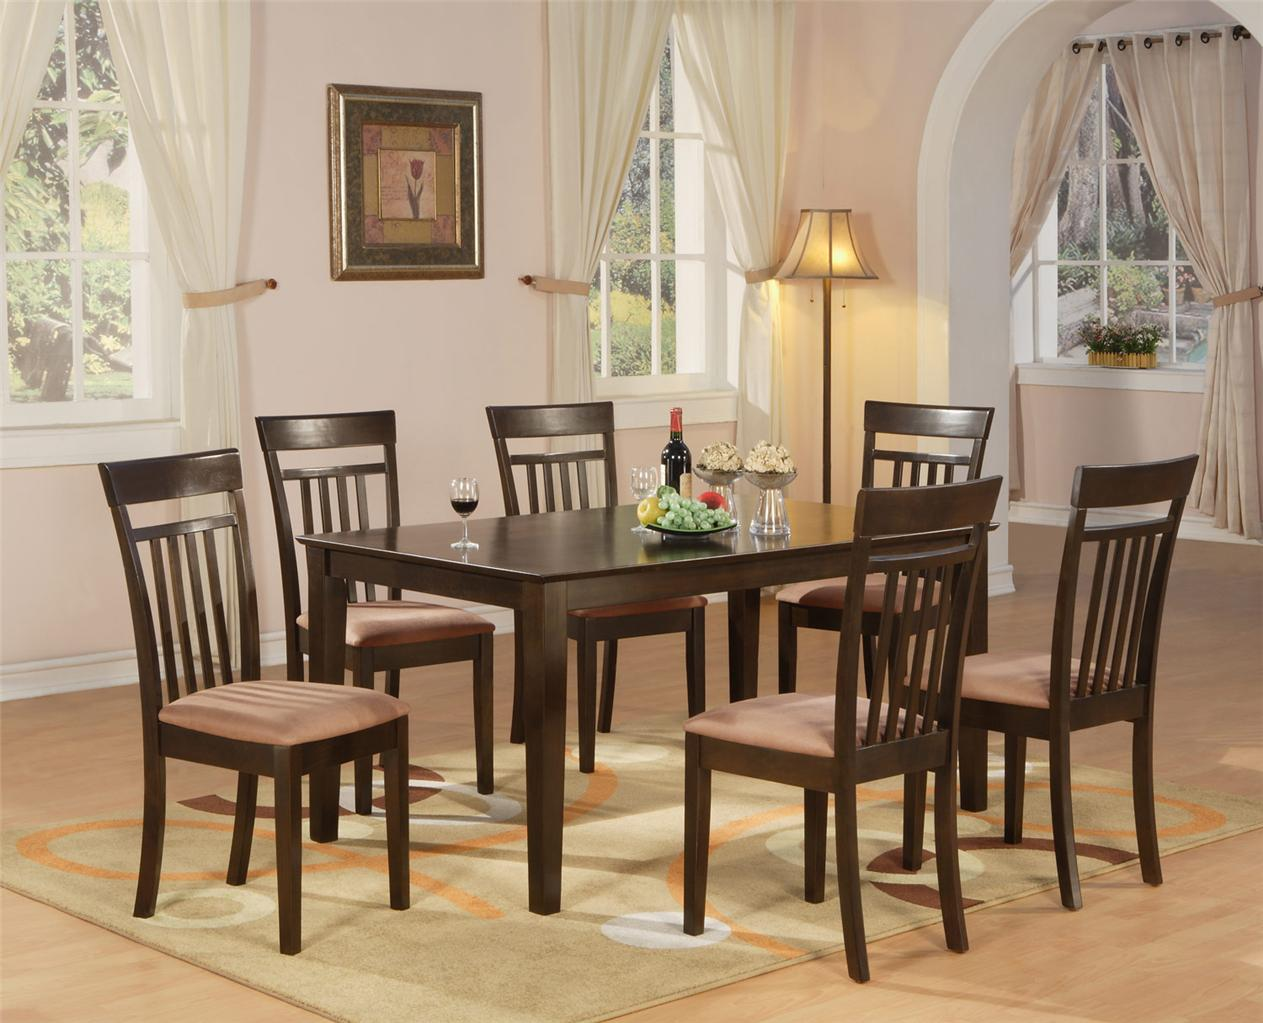 7 pc dining room dinette kitchen set table and 6 chairs ebay for Dining room kitchen sets